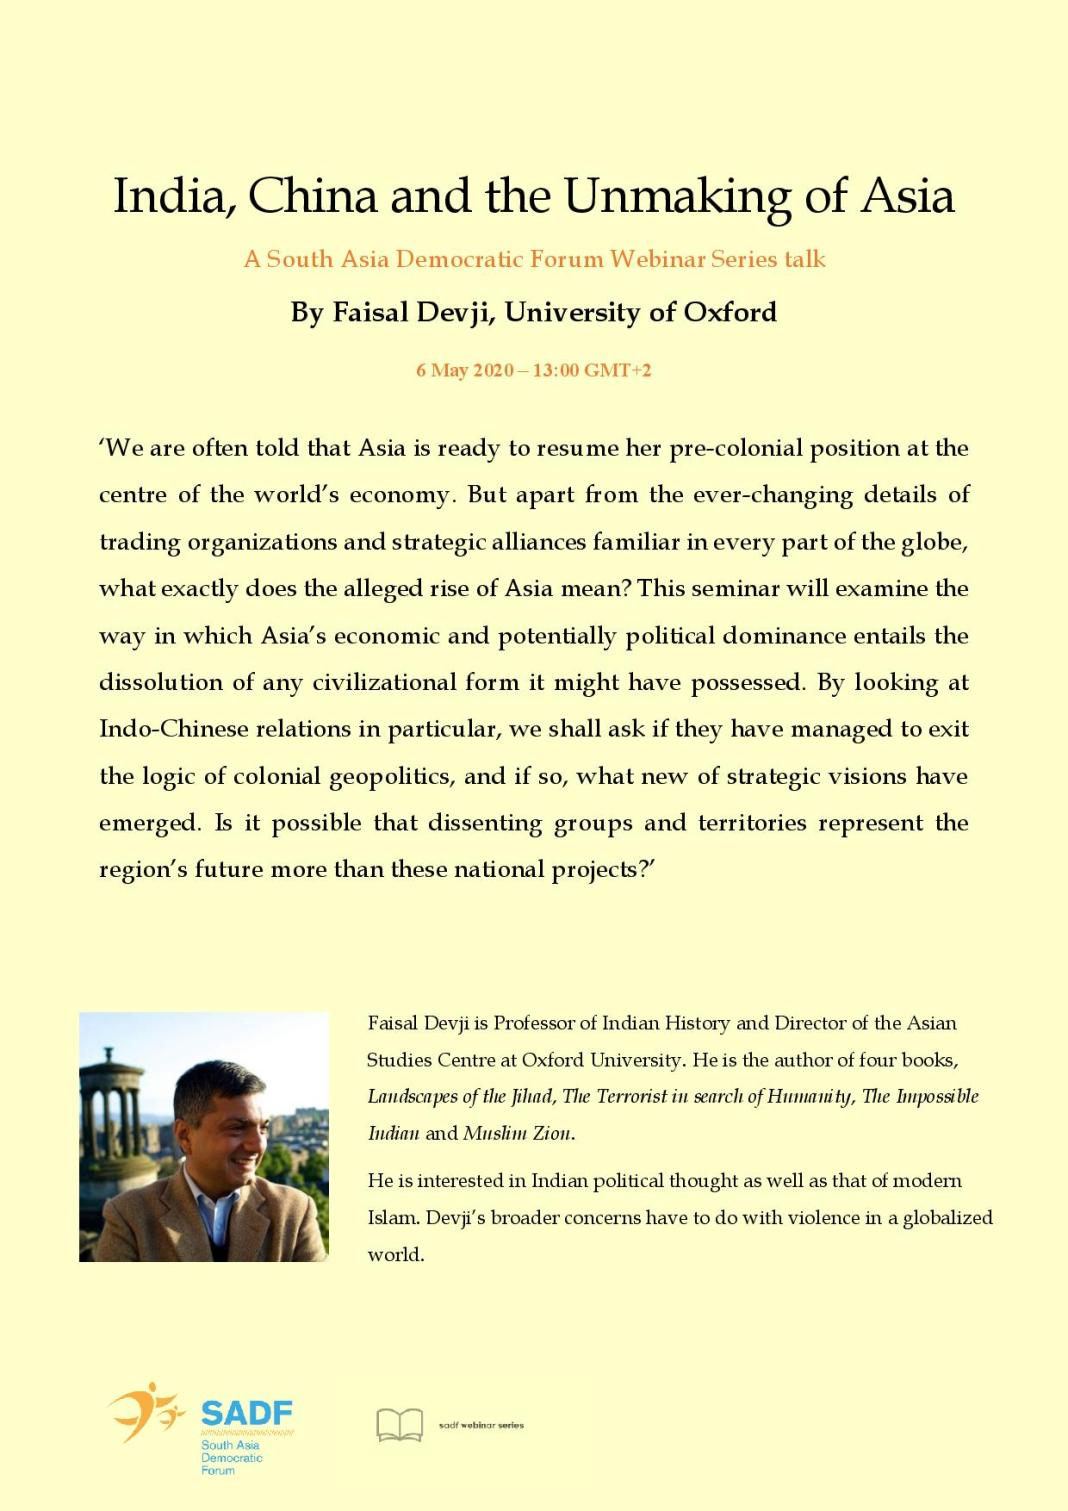 , India, China and the Unmaking of Asia – Faisal Devji, University of Oxford